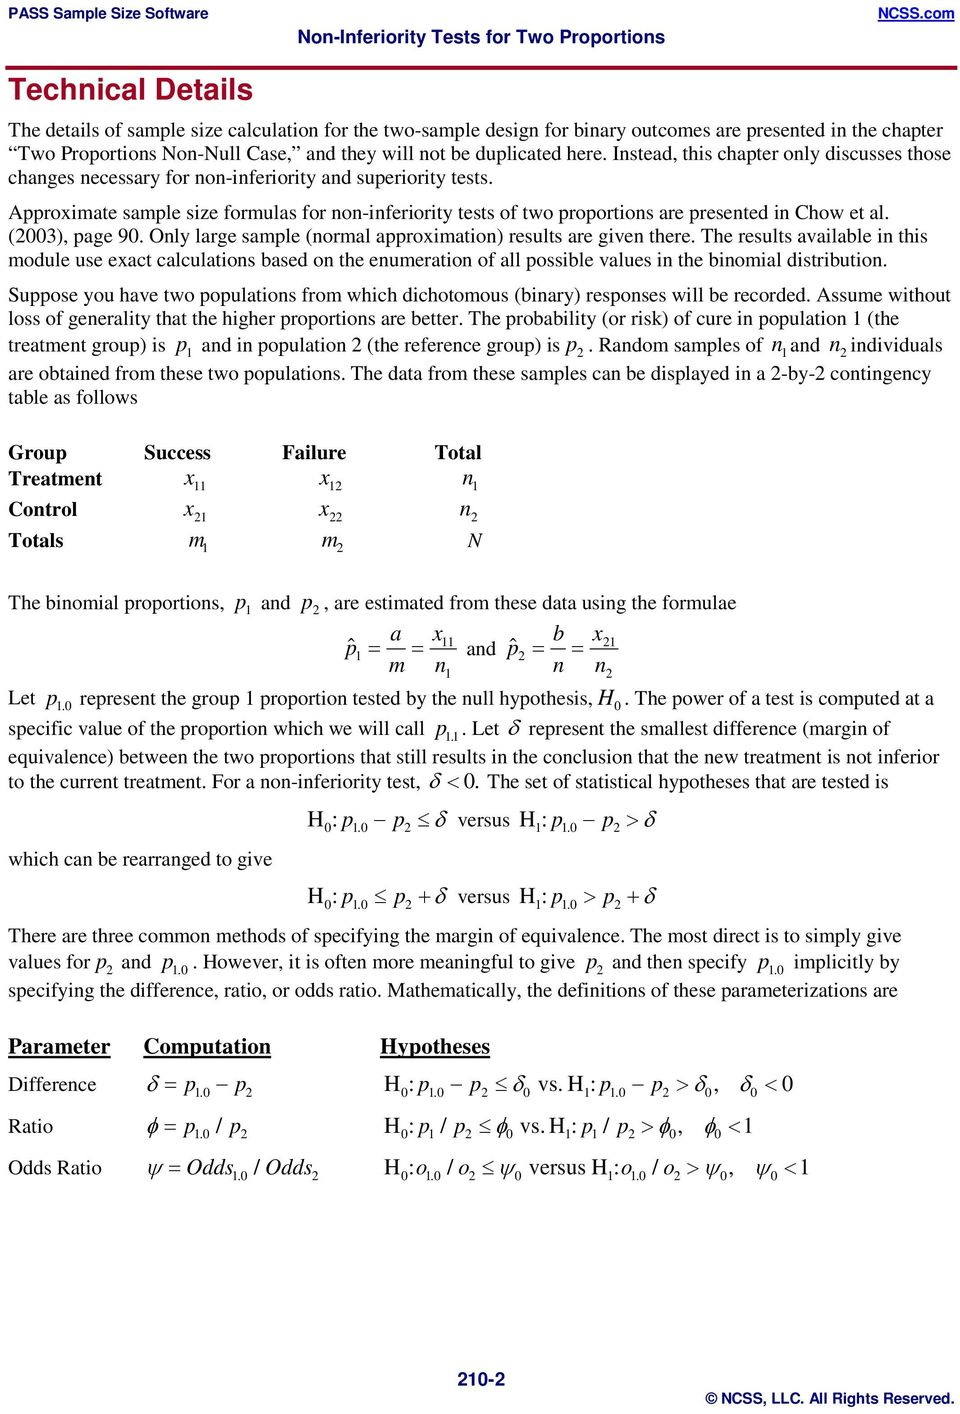 Approximate sample size formulas for non-inferiority tests of two proportions are presented in Chow et al. (003), page 90. Only large sample (normal approximation) results are given there.